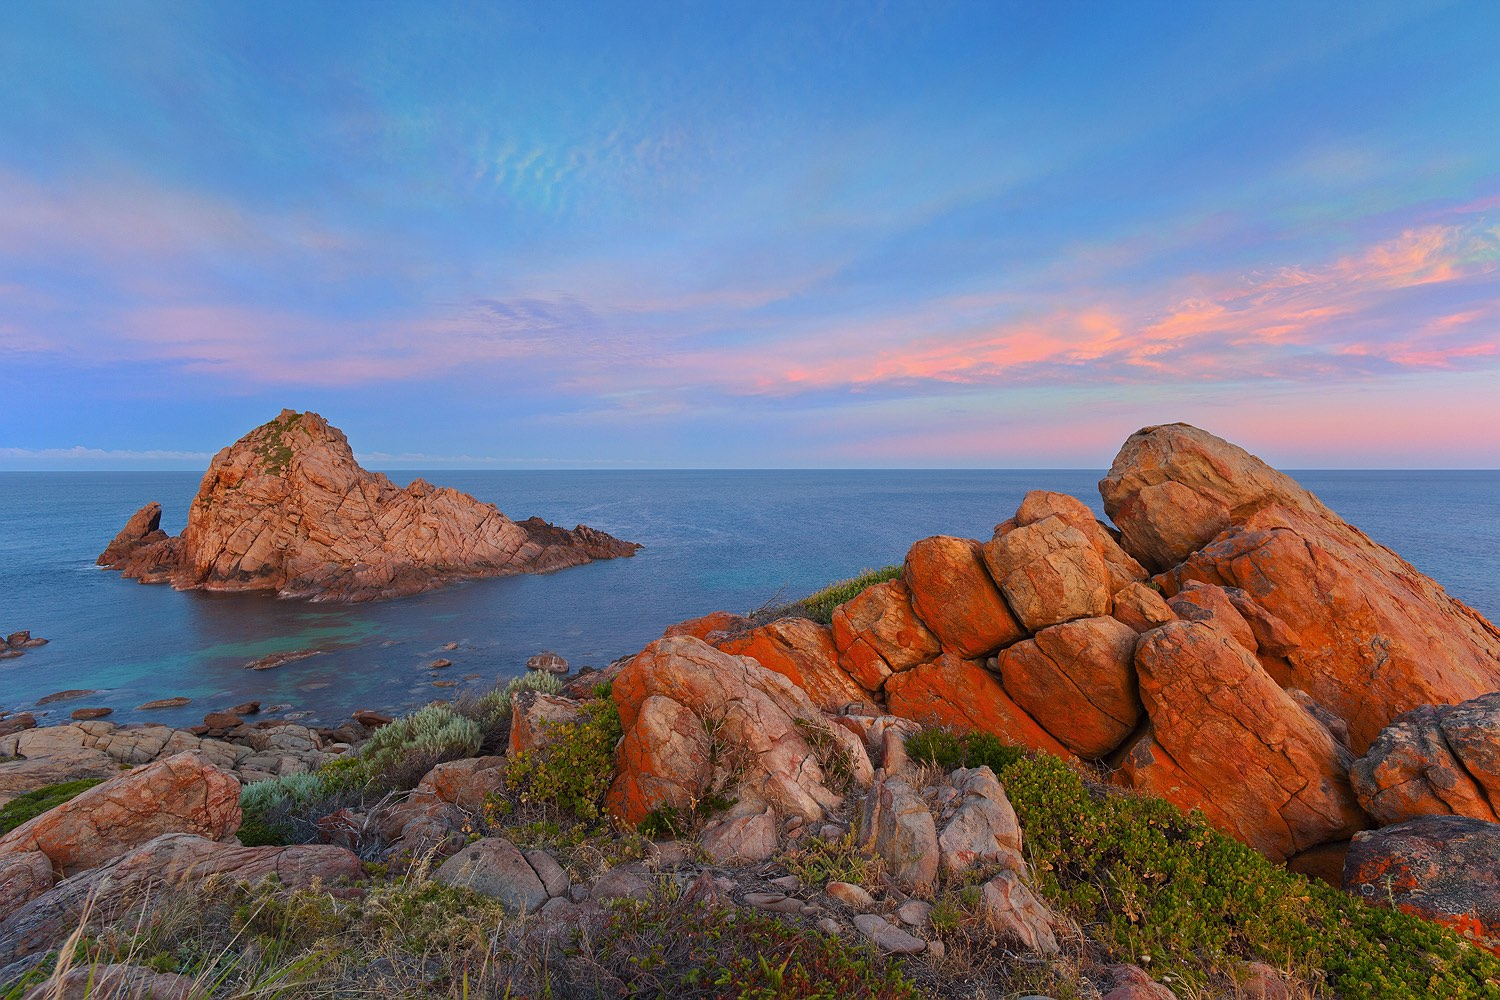 01_sugarloaf_rock_south-west_western-australia_rob-dose_dawn